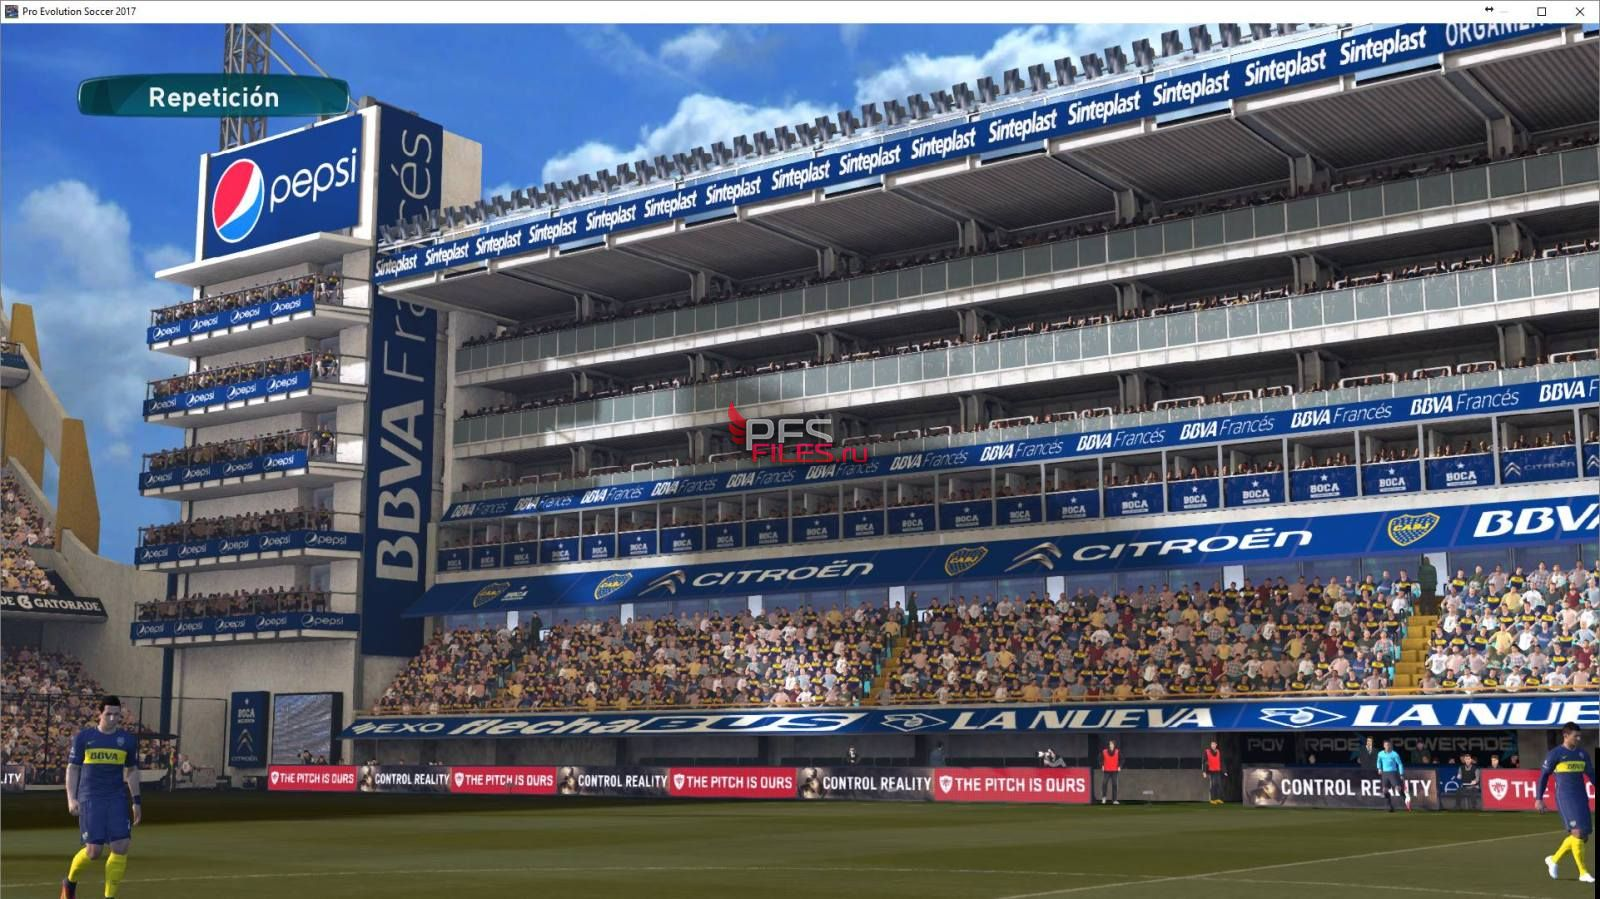 PES 2017 Estadio la Bombonera by BlackBull